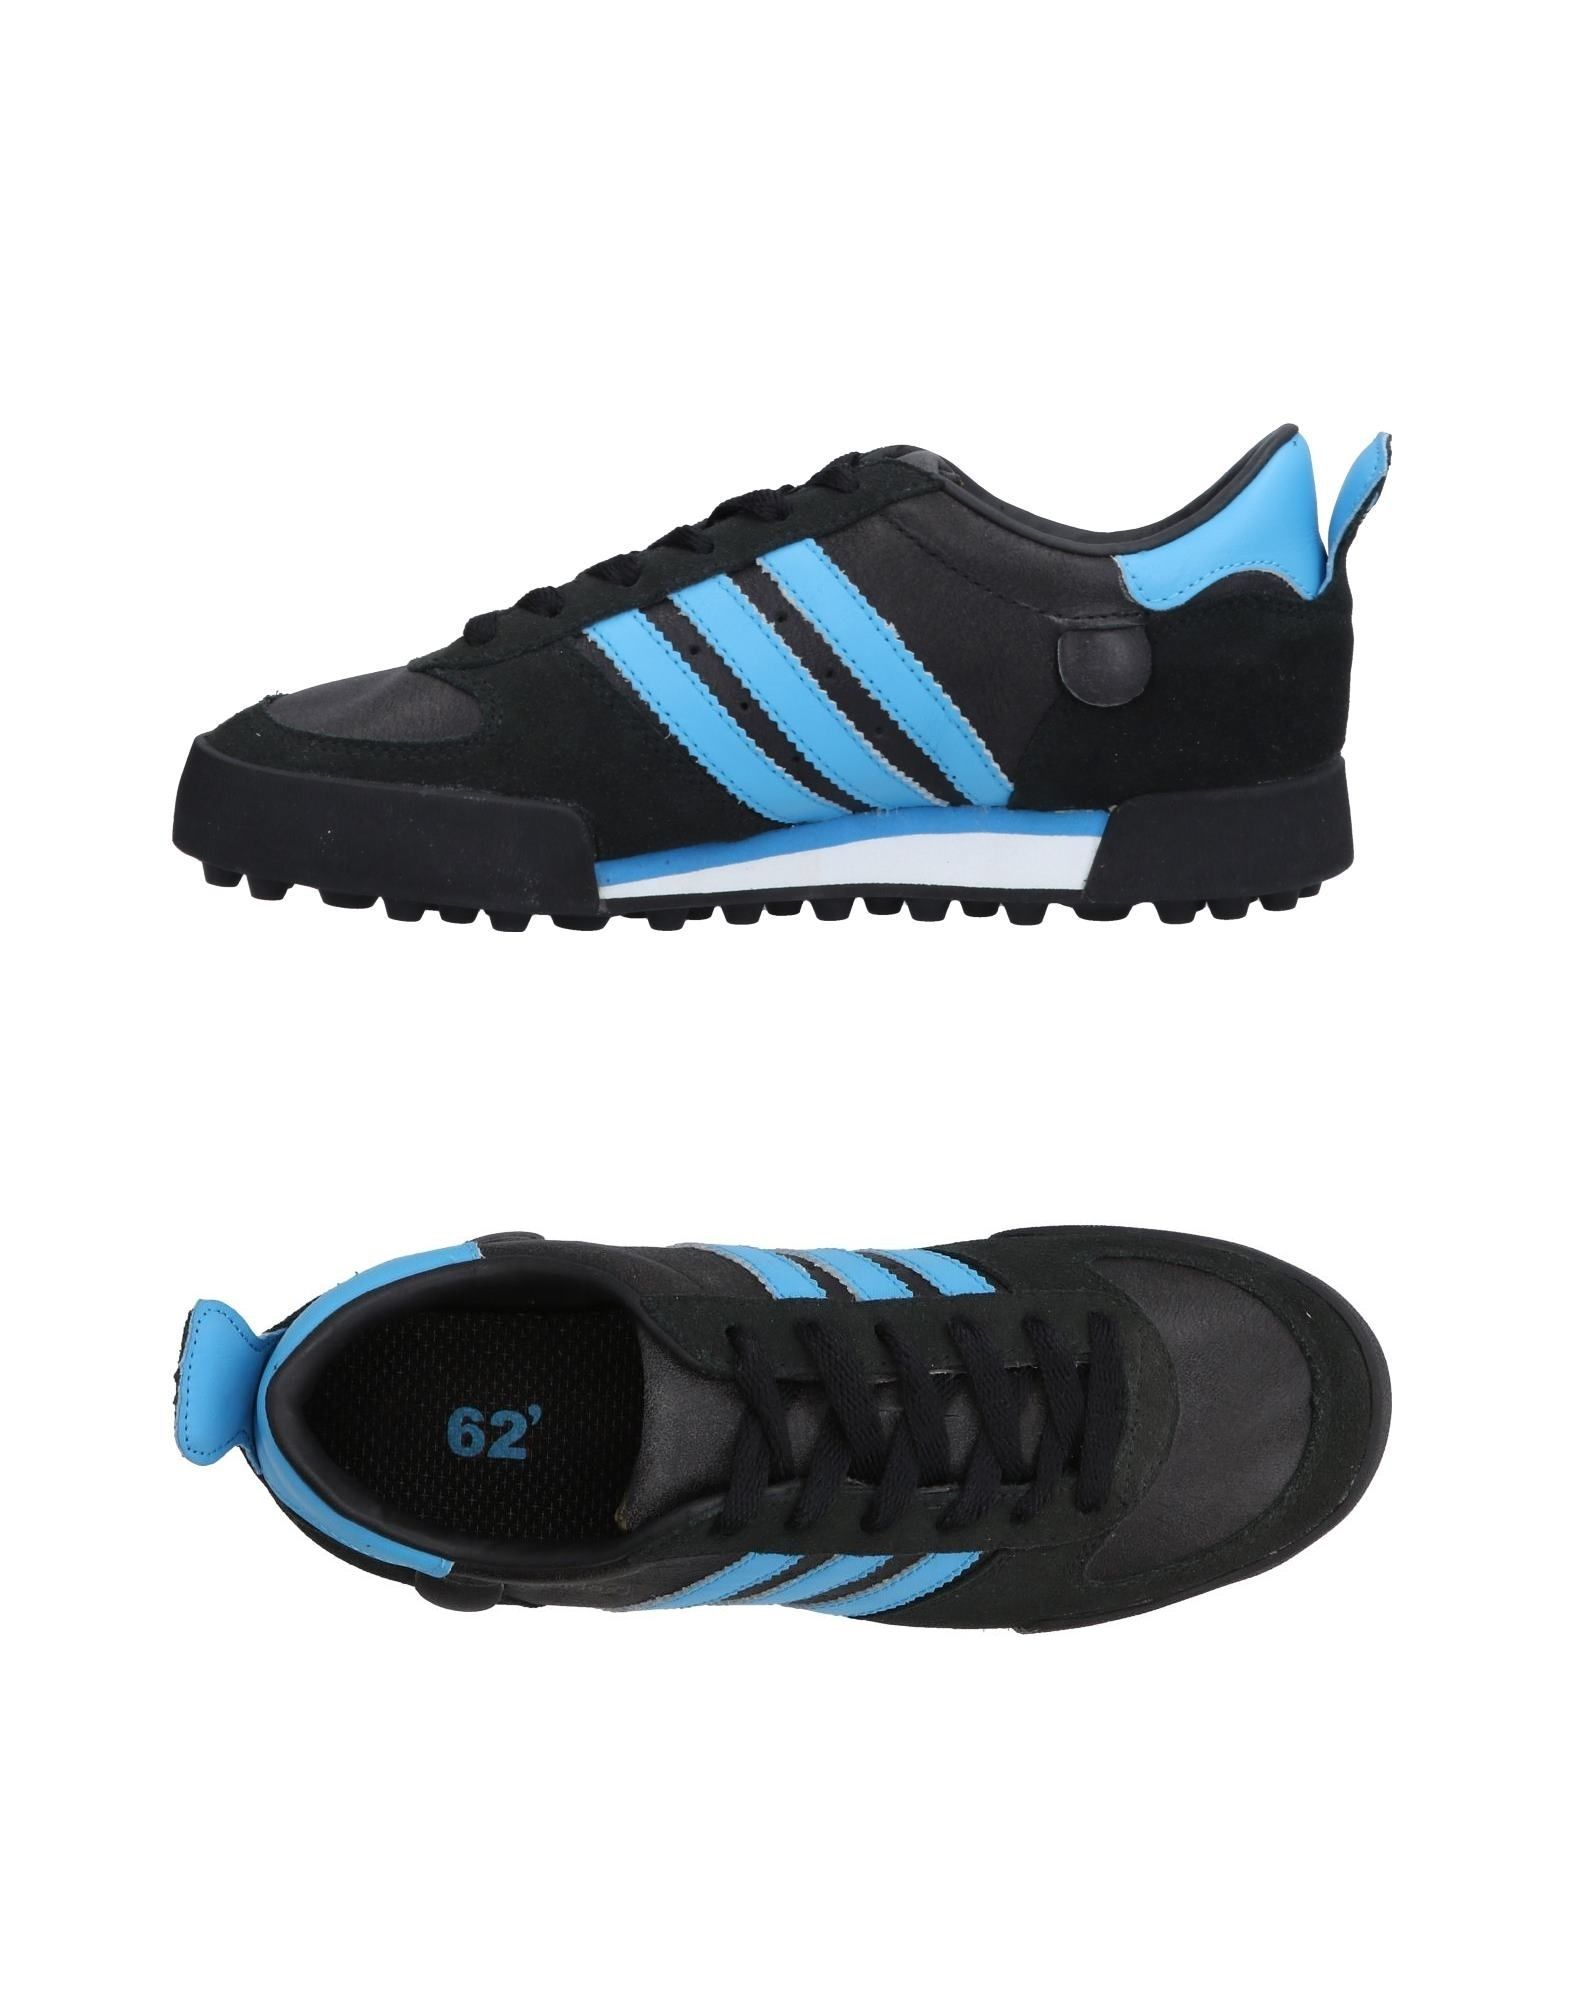 Adidas Originals Sneakers Sneakers - Men Adidas Originals Sneakers Sneakers online on  United Kingdom - 11498172BU c4b0a4